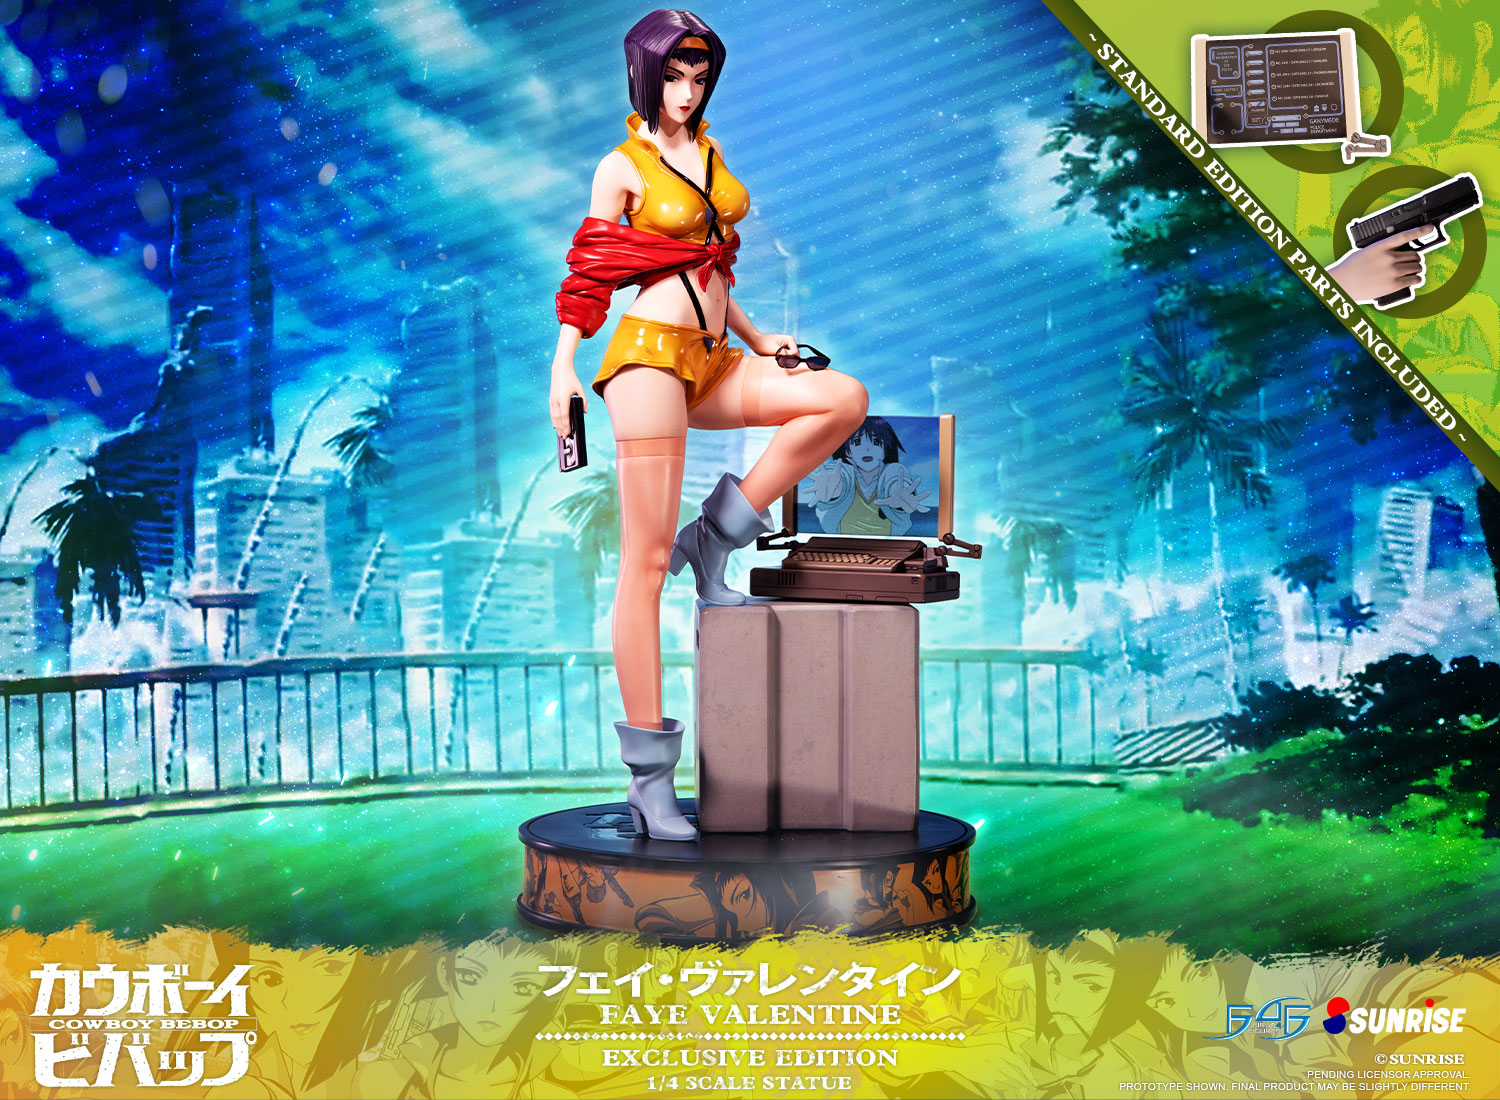 Faye Valentine (Exclusive Edition)